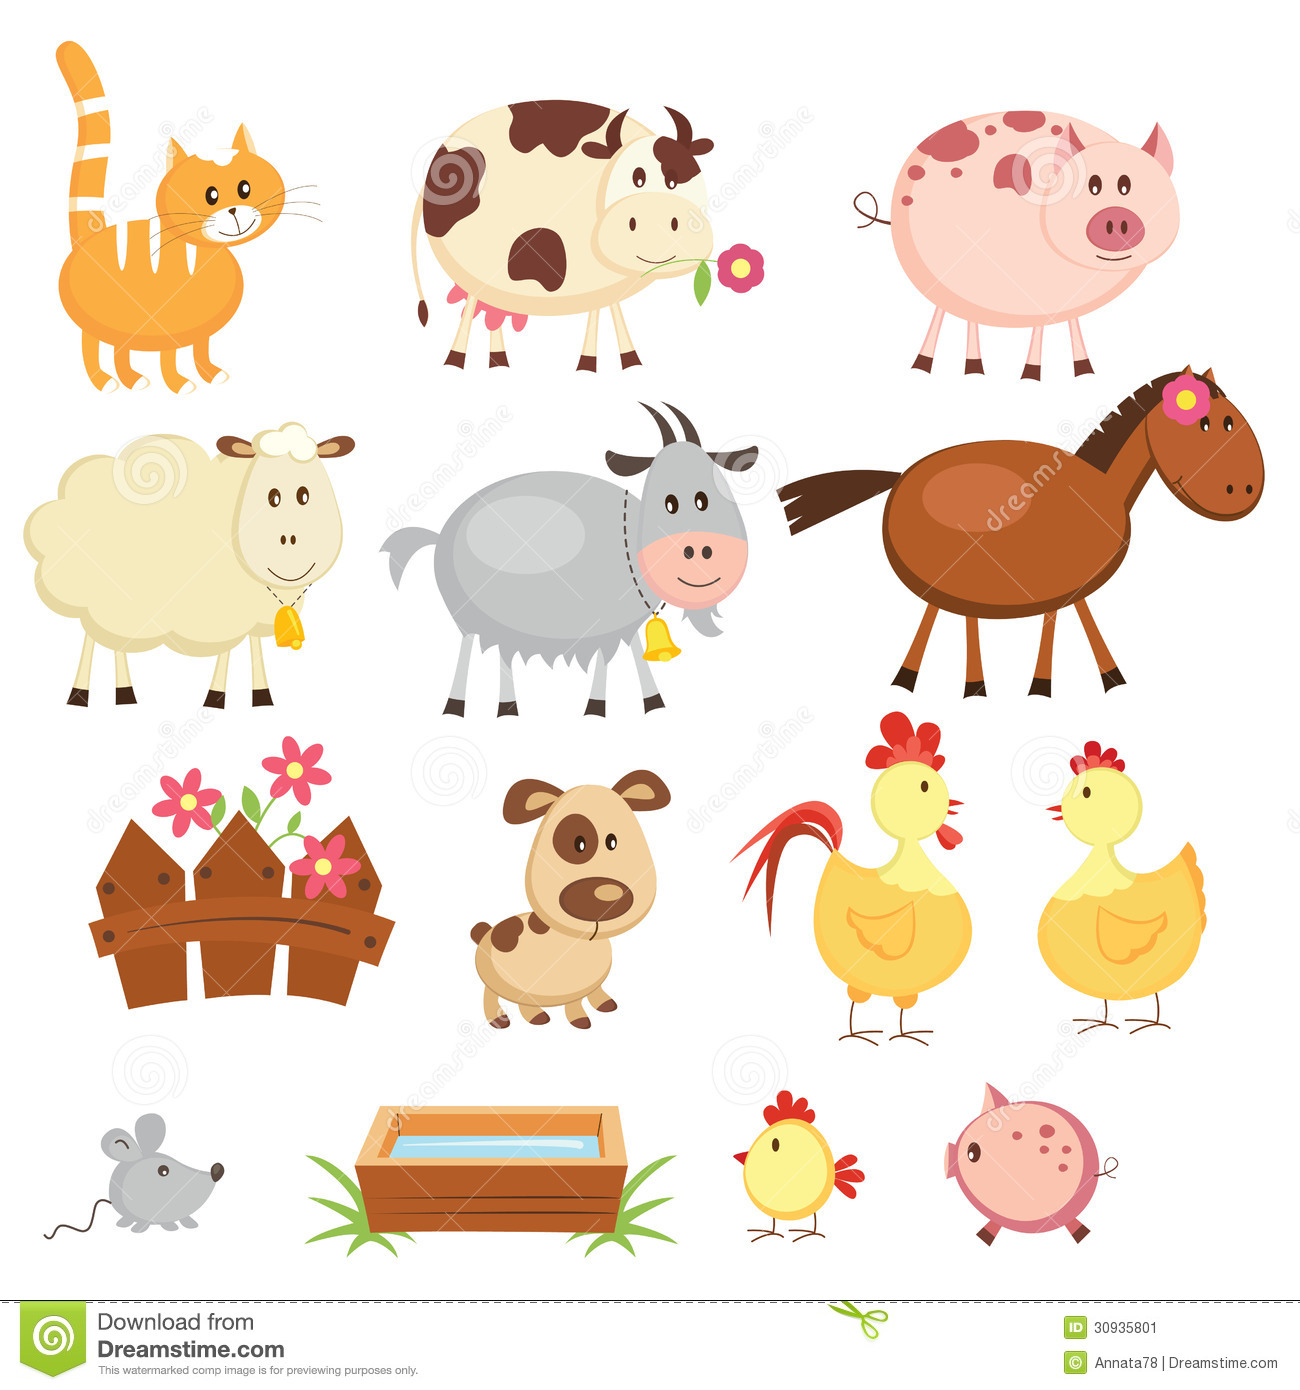 Farm animals stock vector. Image of icon, animal, colorful ...